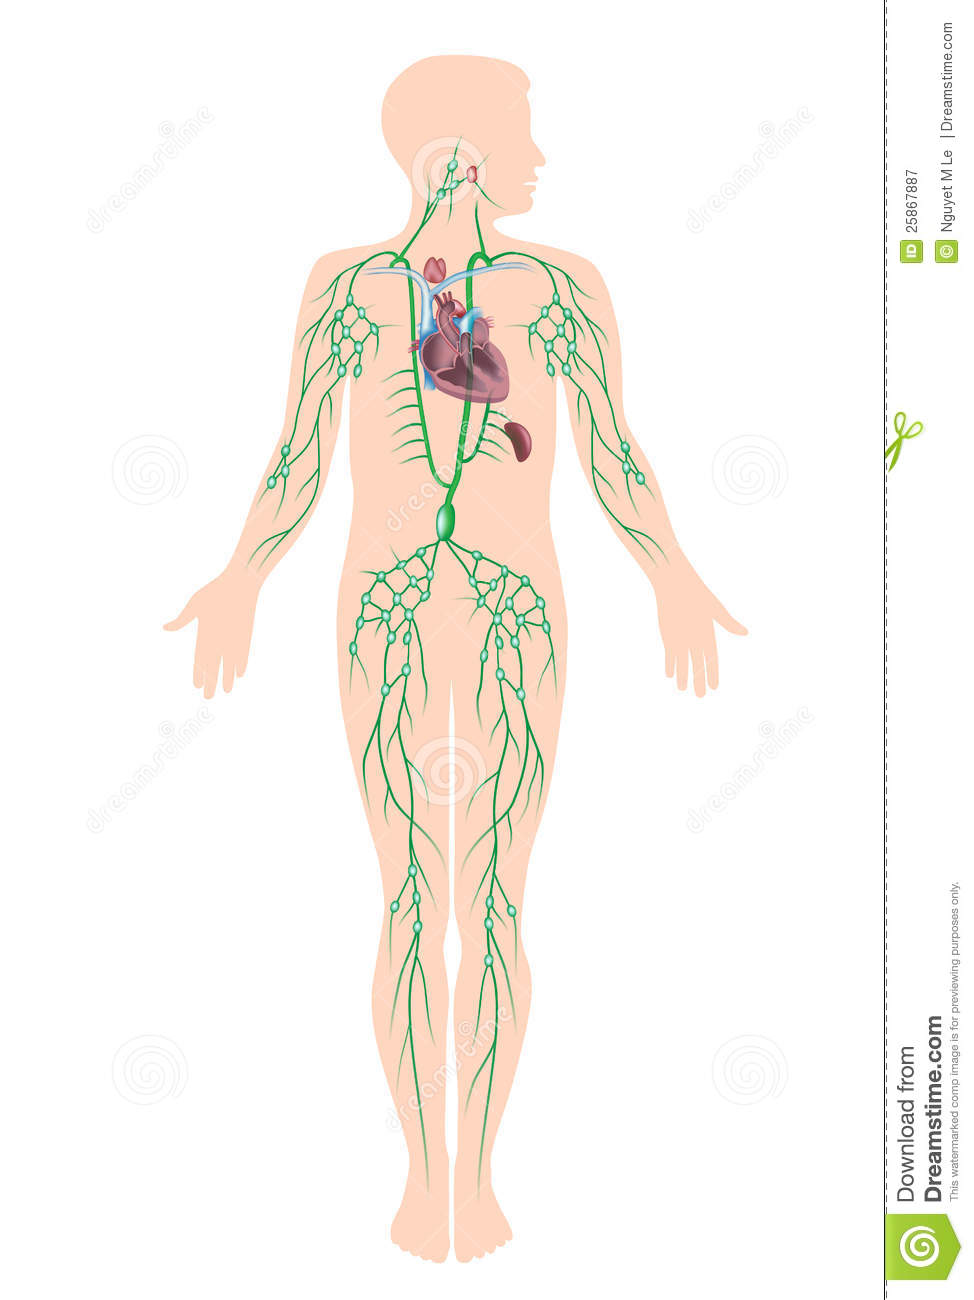 The Lymphatic System Stock Vector Illustration Of Gland 25867887